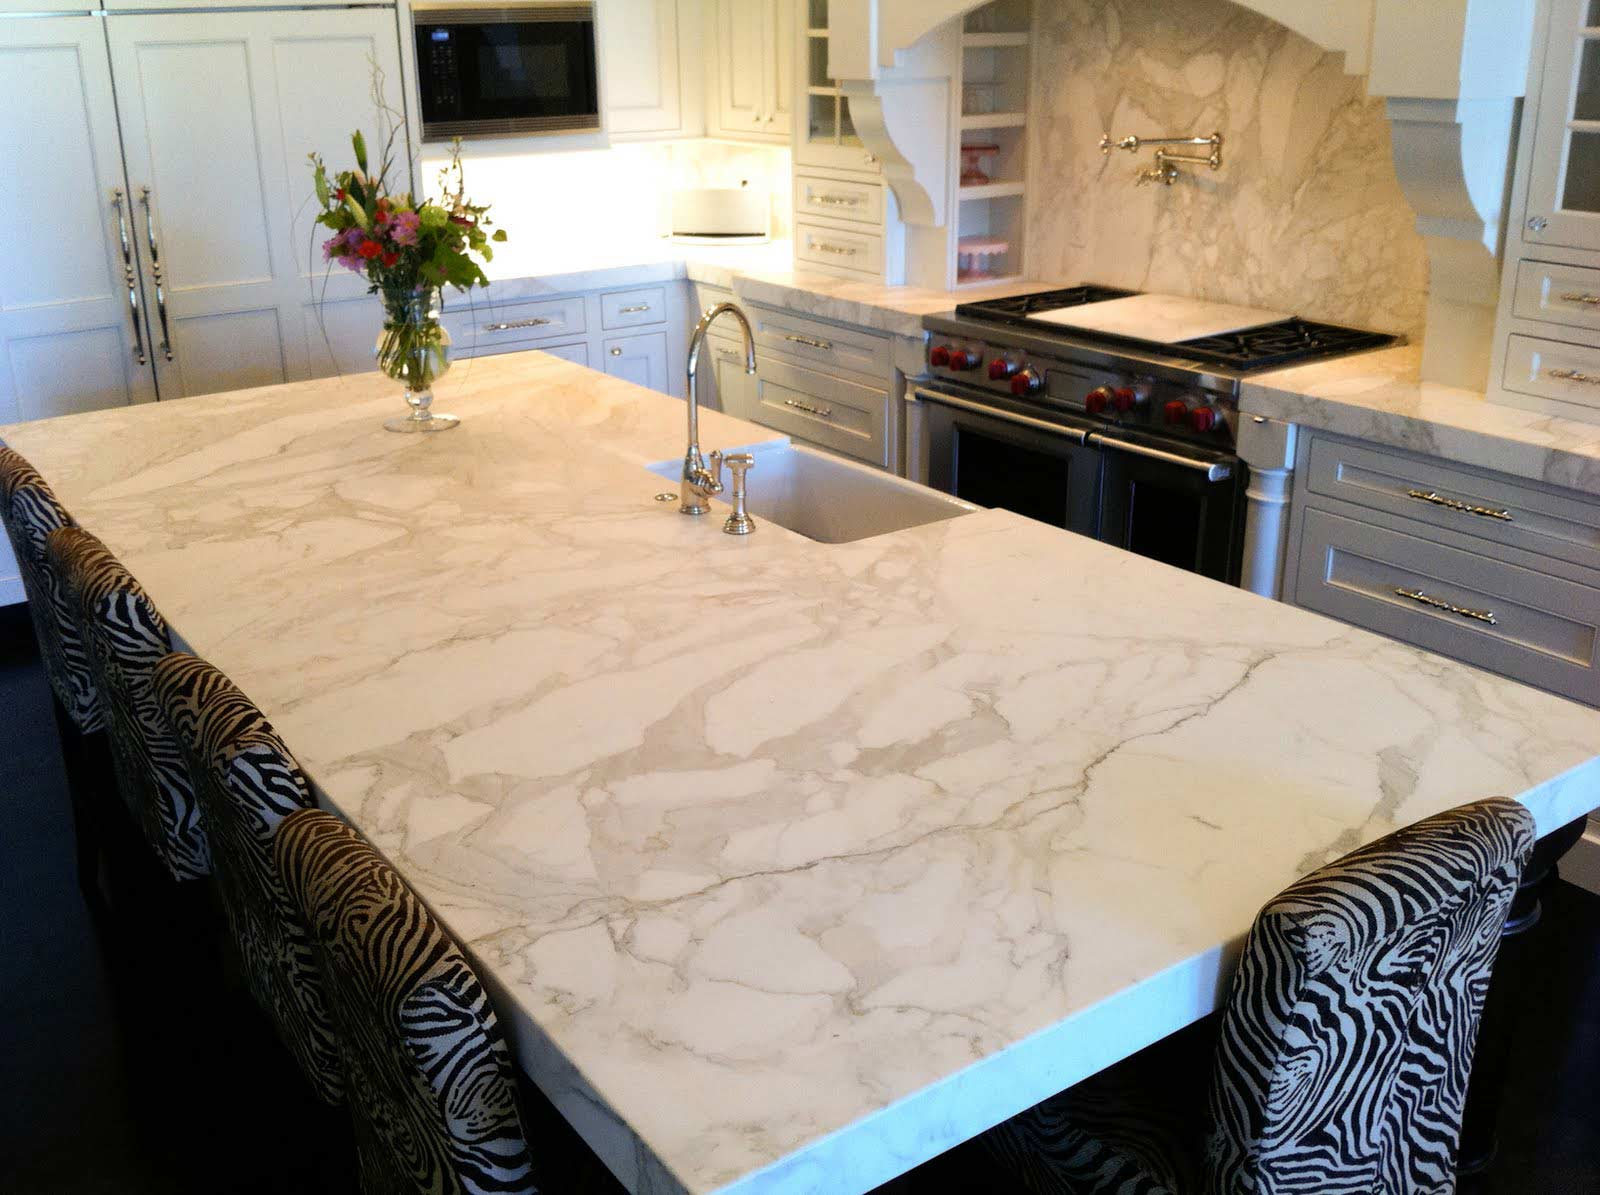 quartz-countertop-luxury-kitchen-toronto